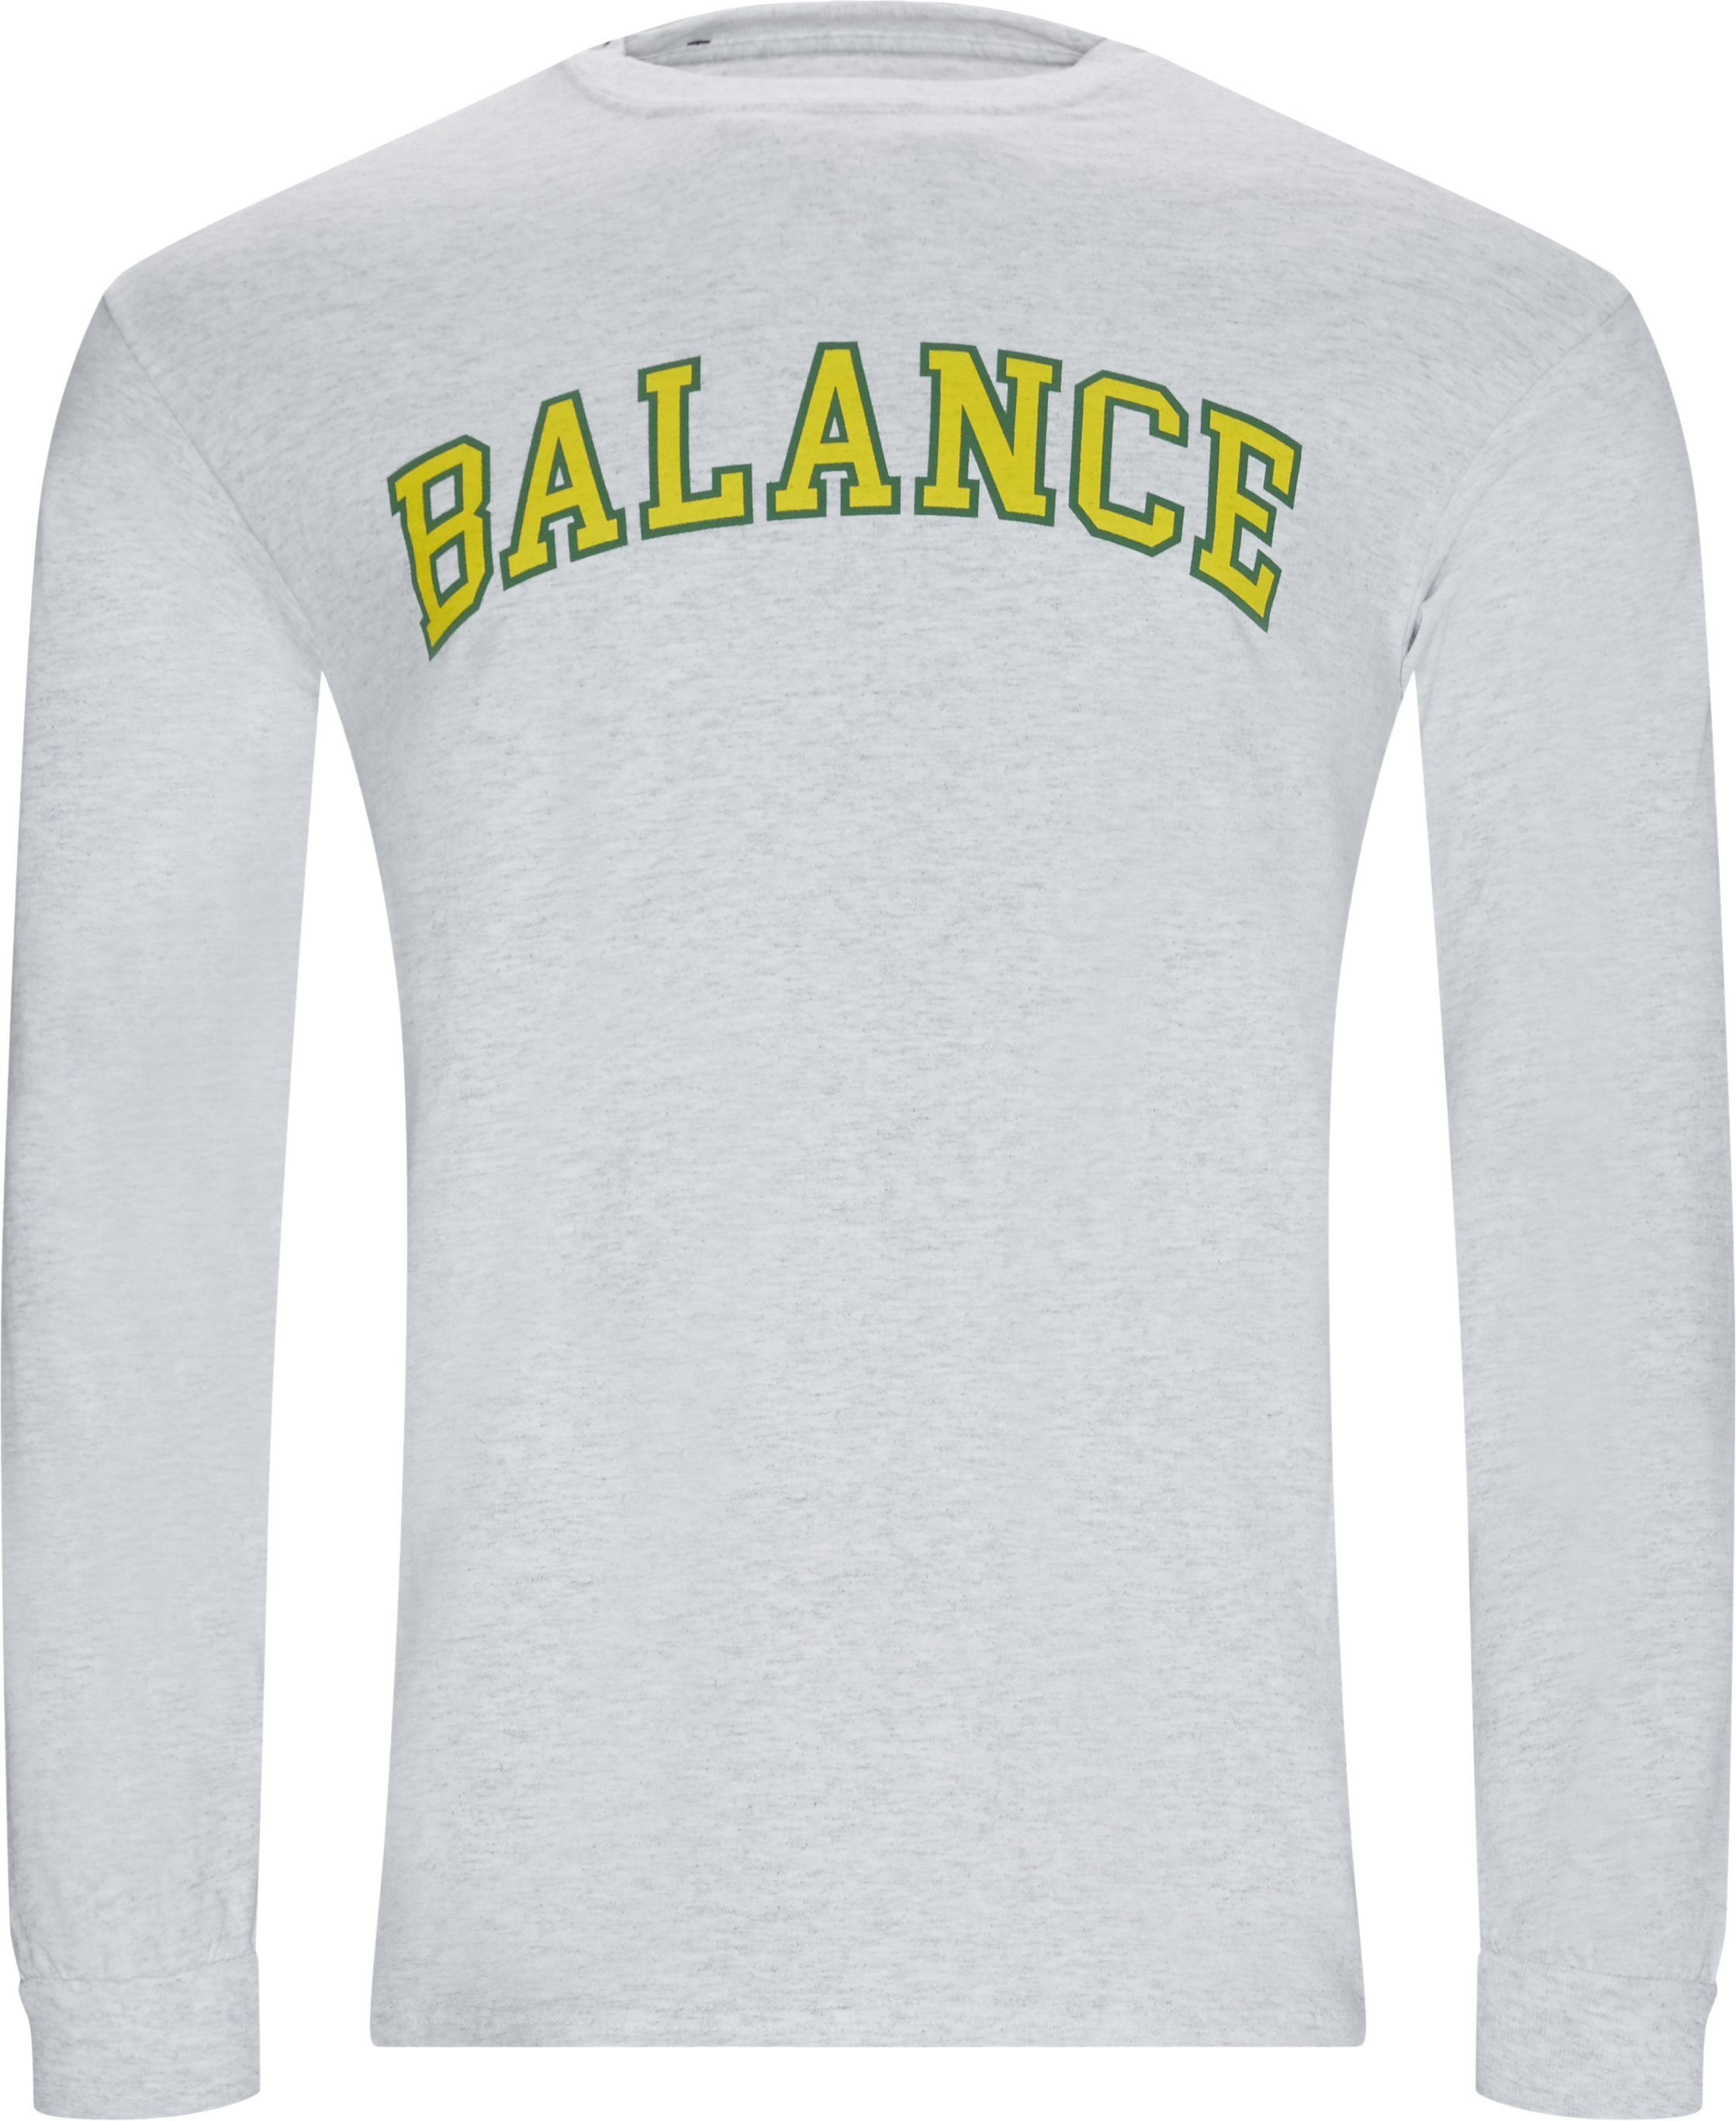 Balance Long Tee - T-shirts - Regular - Grå